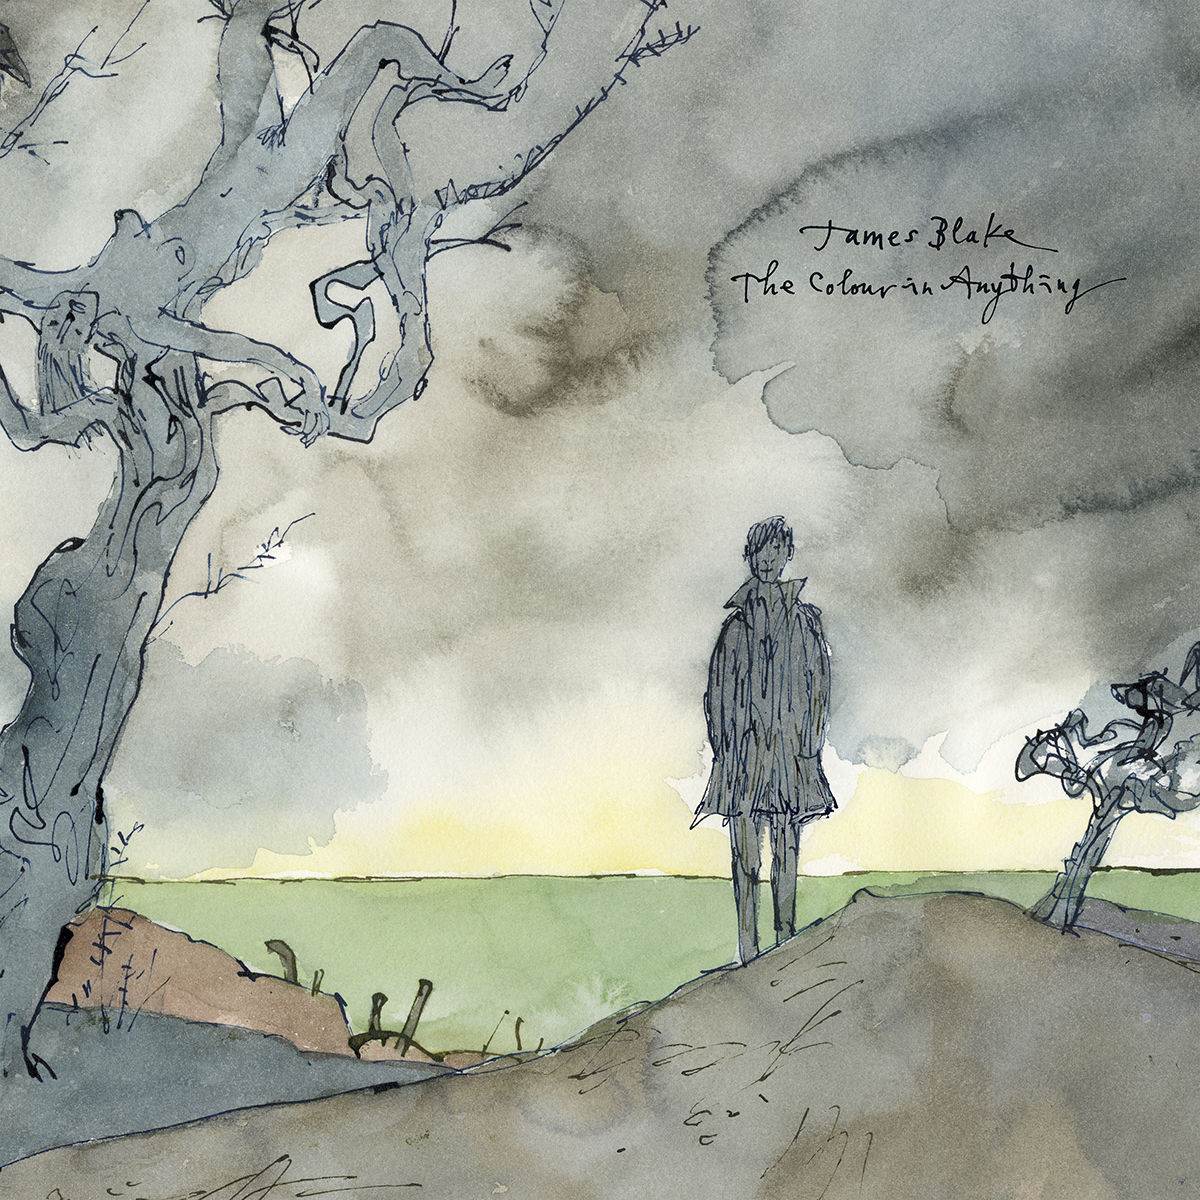 James Blake - The Colour in Anything. Sir Quentin Blake created the album's cover art, which was also made into a mural in East London